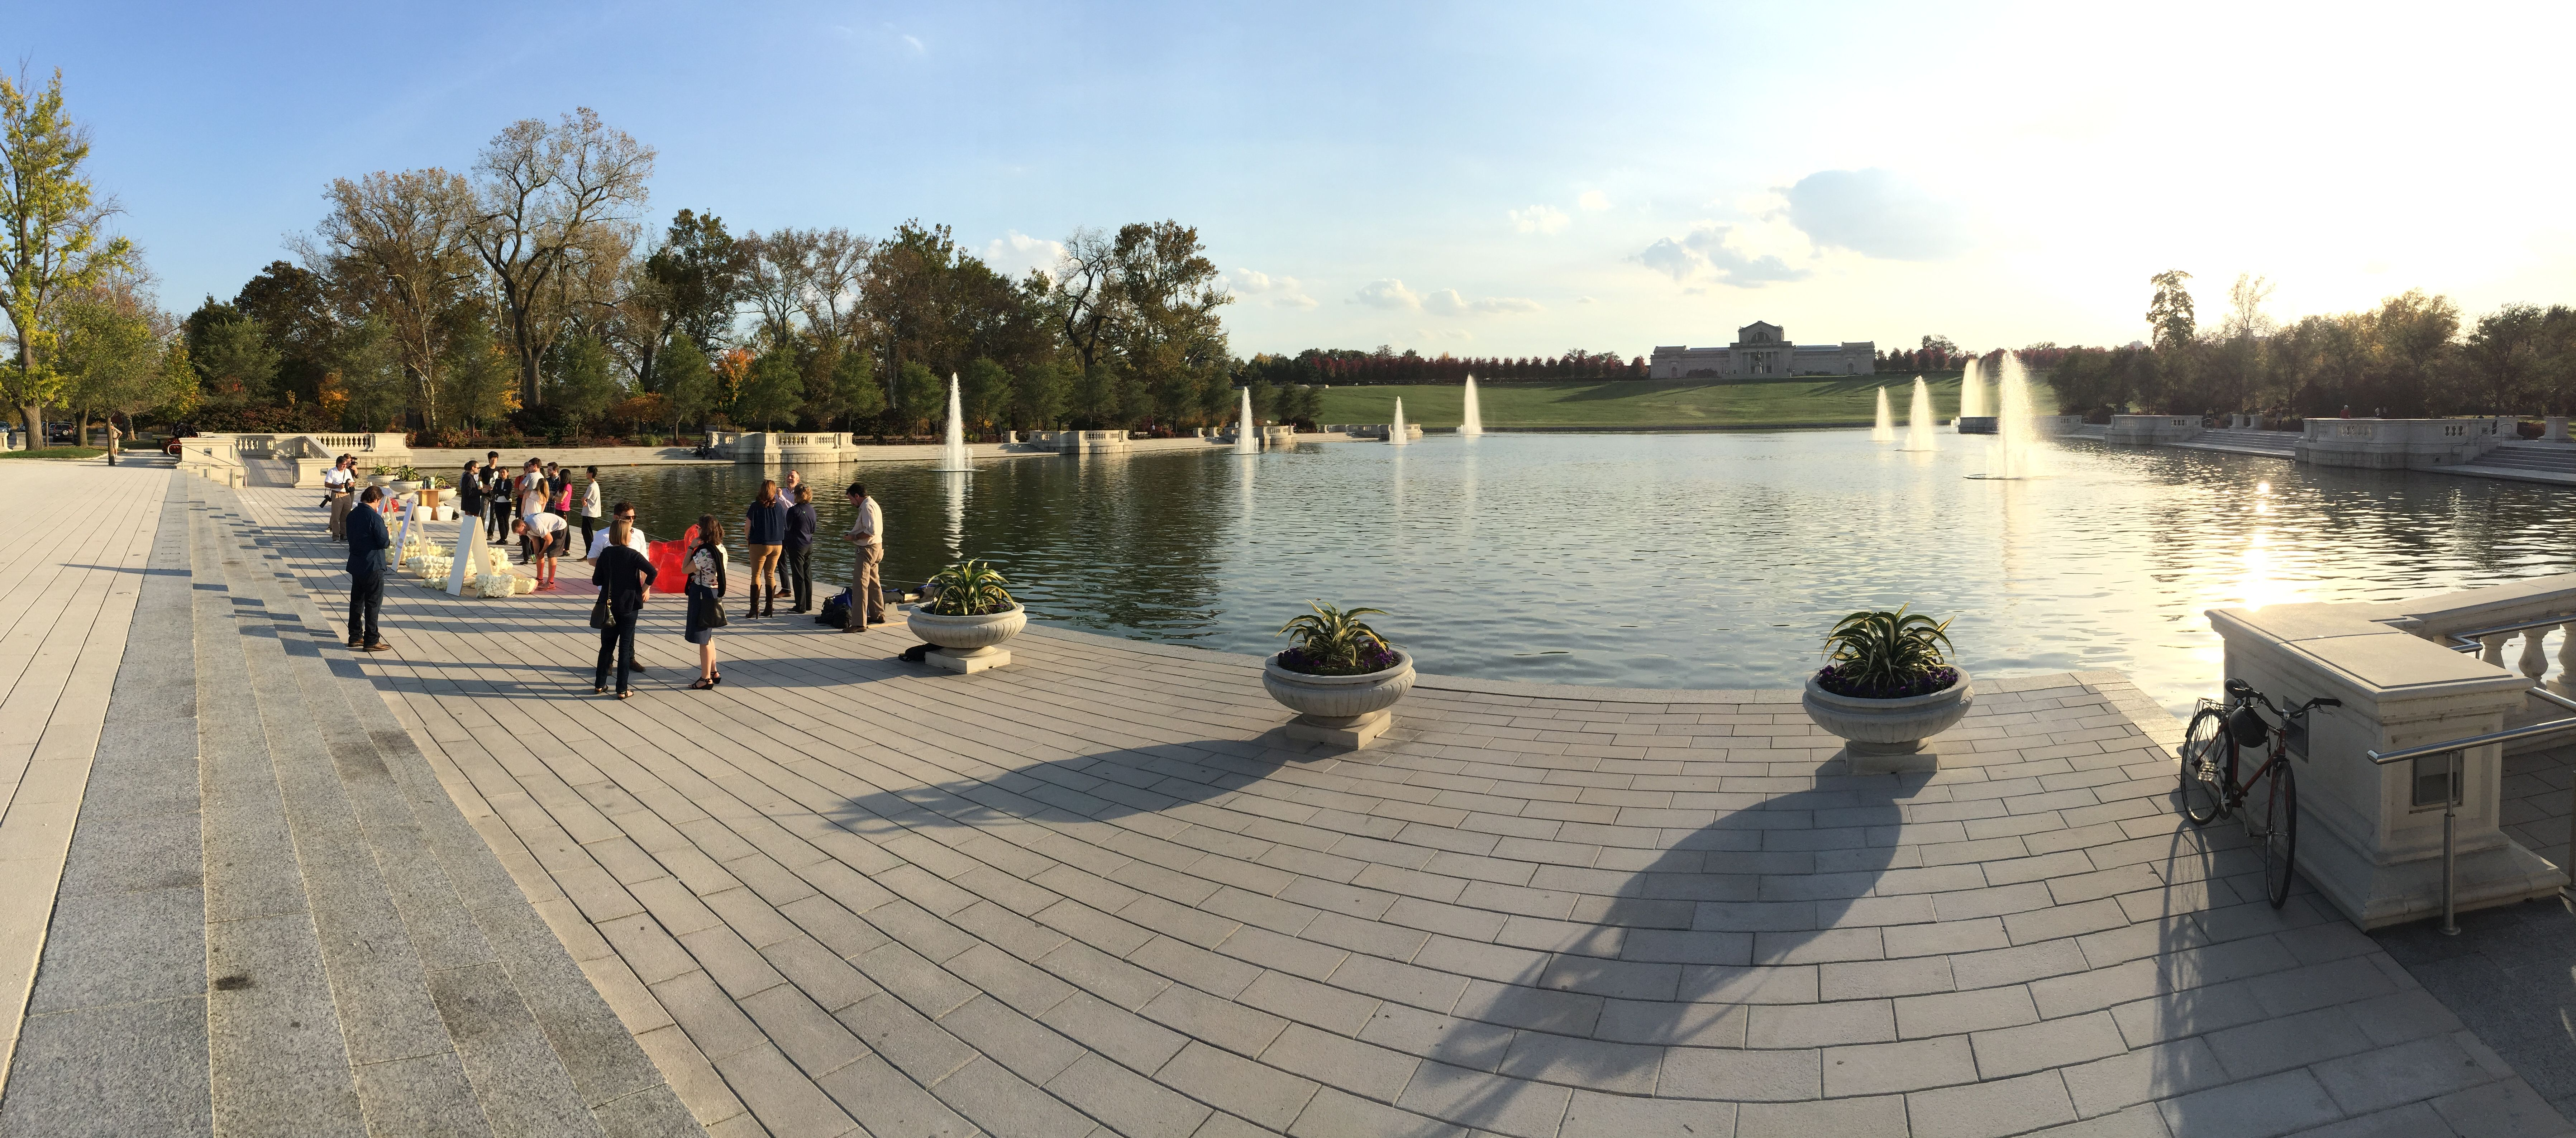 Beautiful Forest Park - St. Louis backdrop for Wash U event.  #FoamFloats